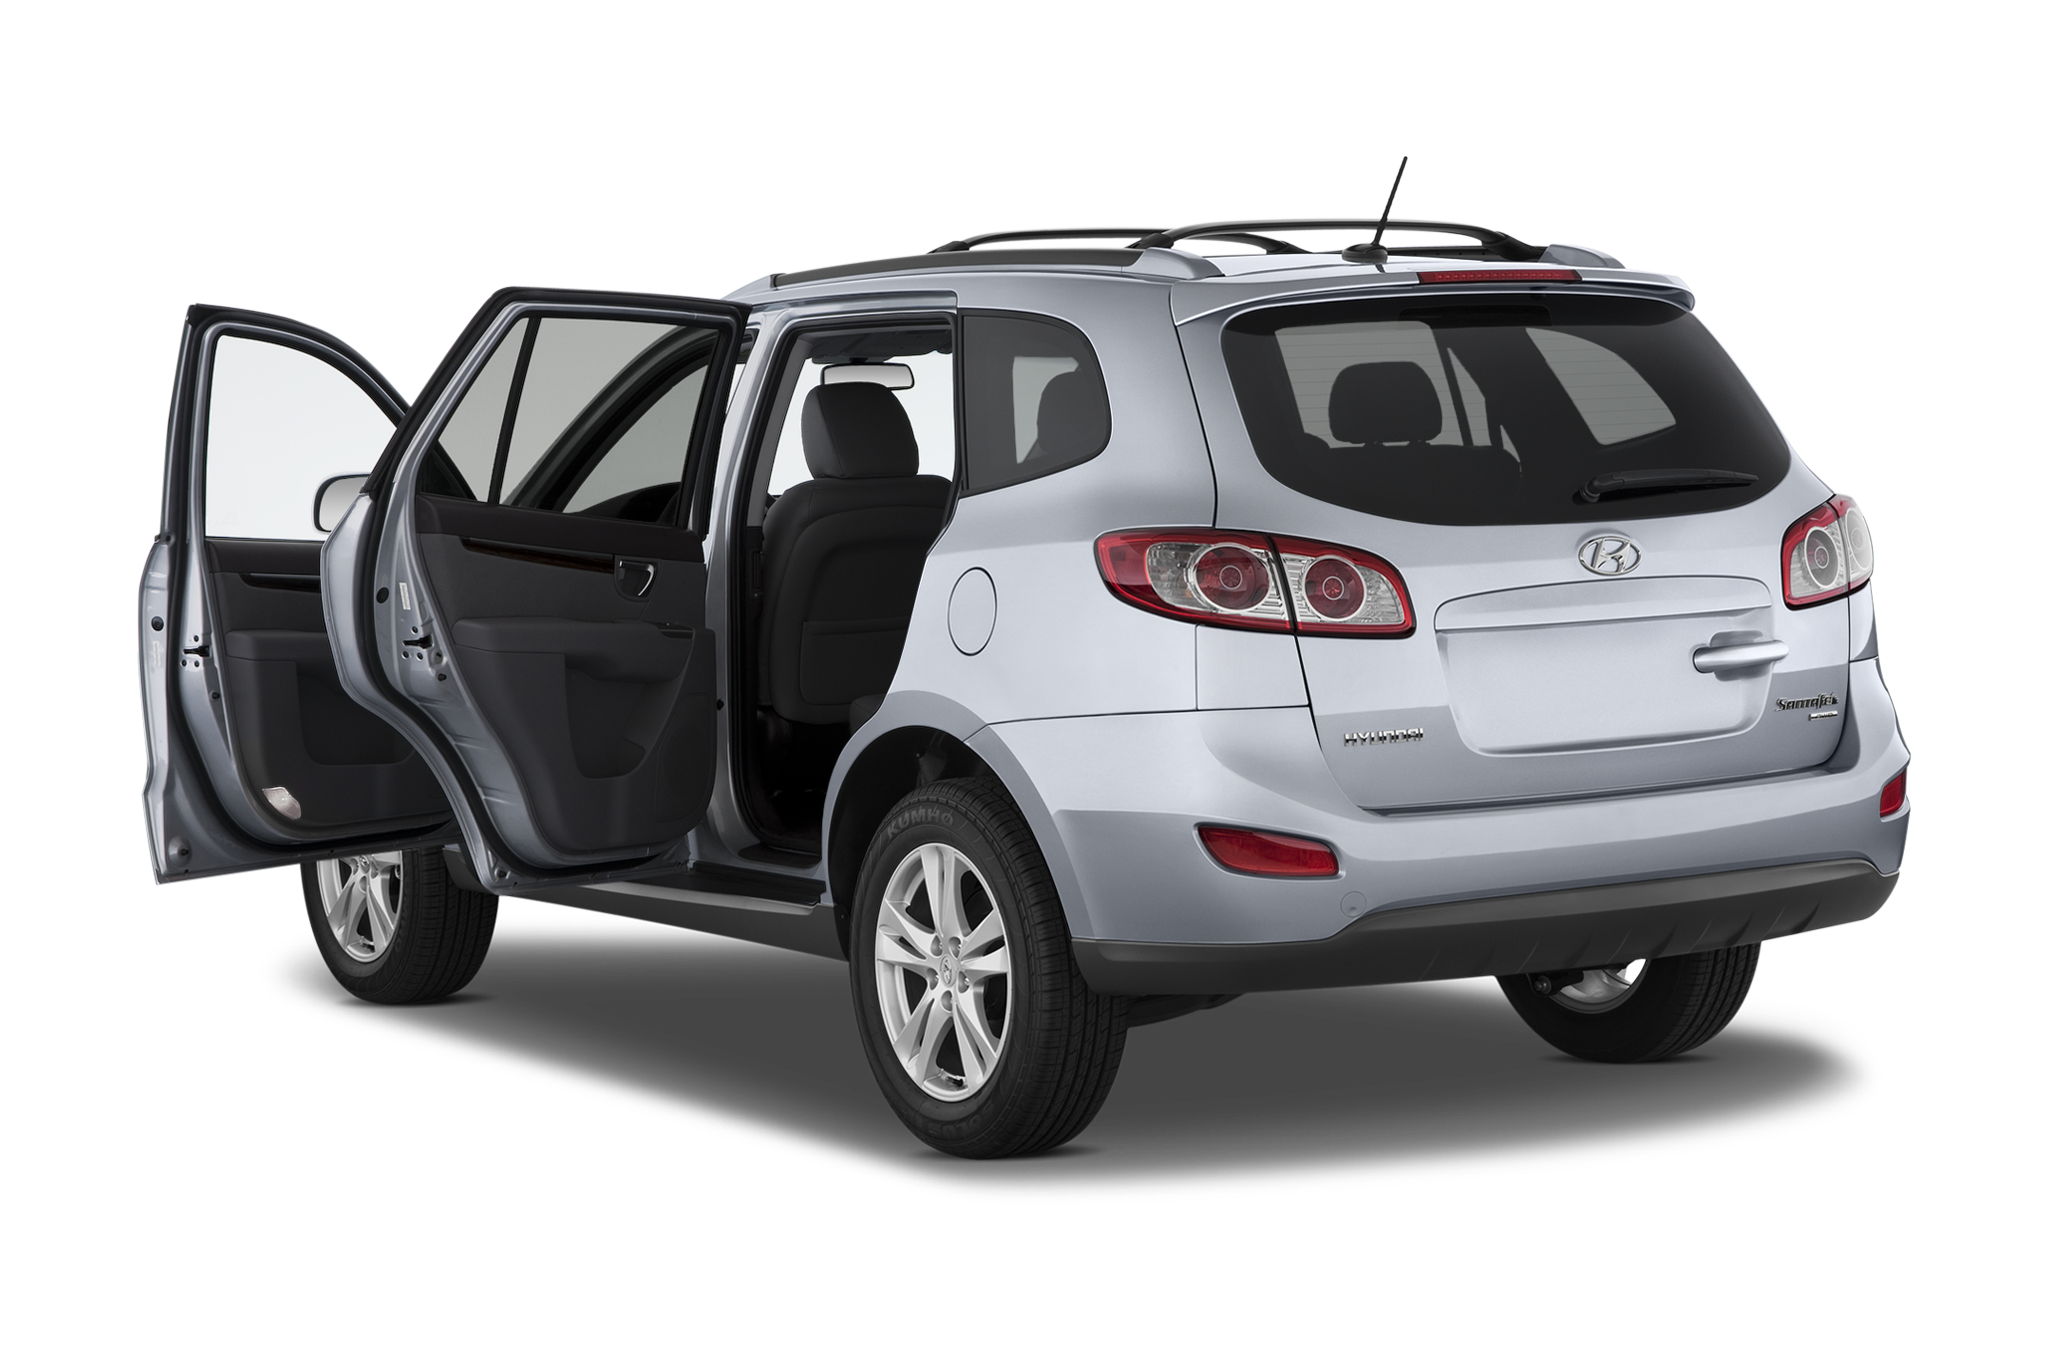 recall central 2011 hyundai santa fe recalled for brake calipers. Black Bedroom Furniture Sets. Home Design Ideas